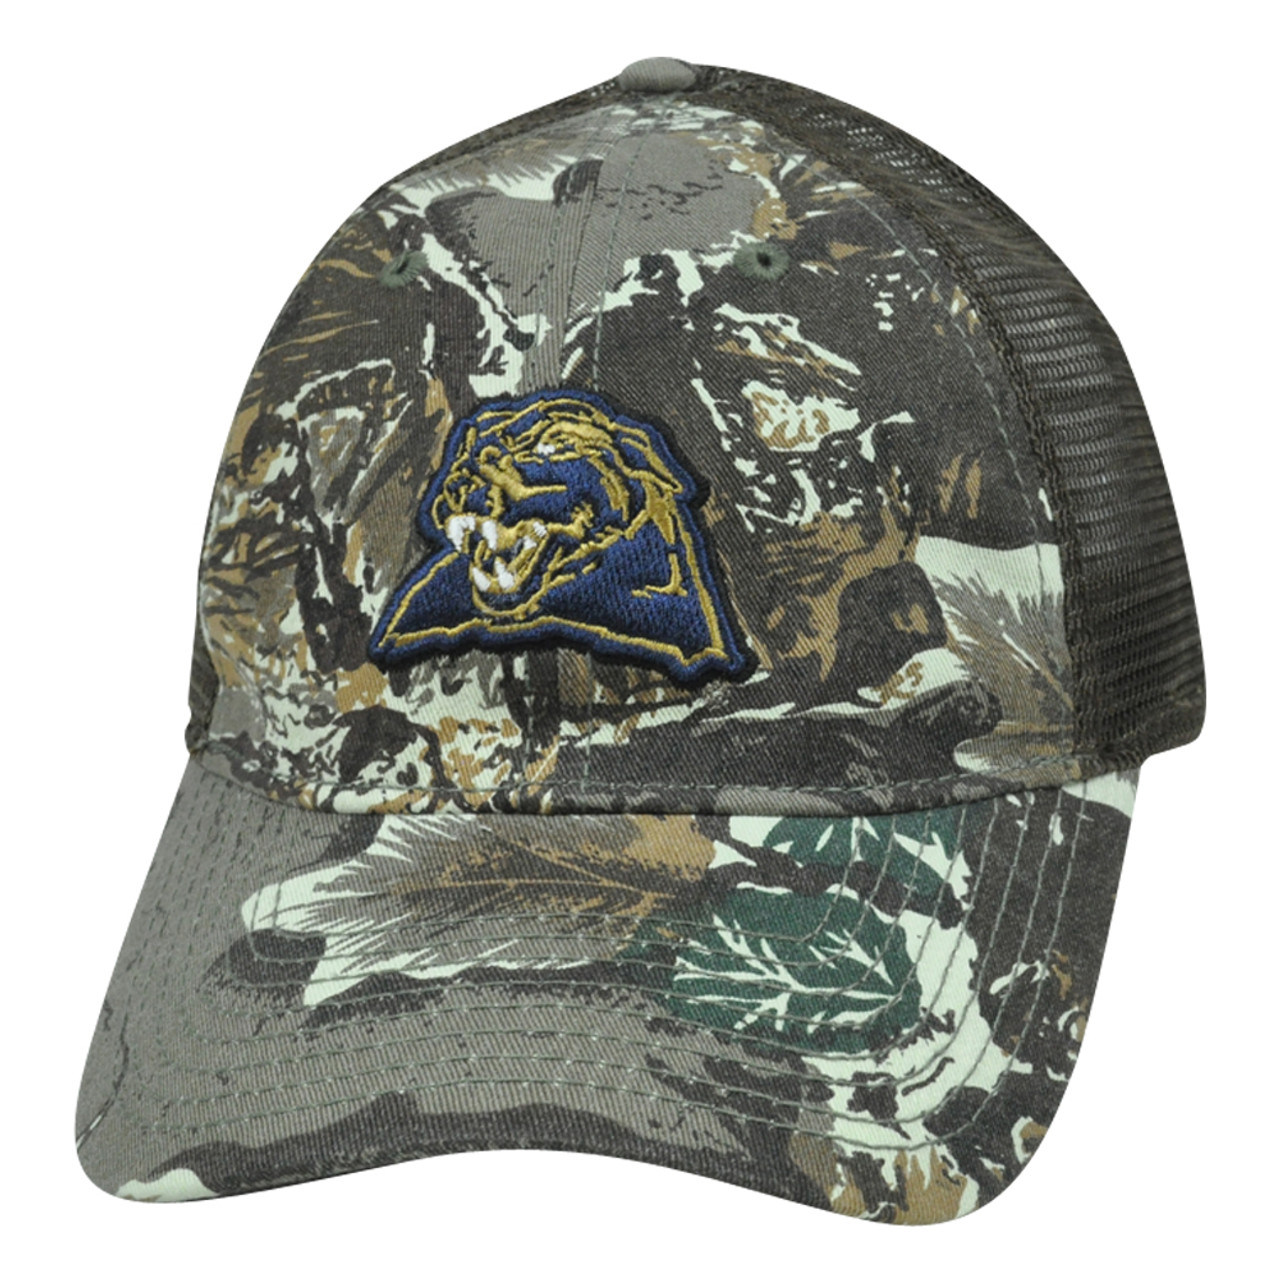 0f4a5405 NCAA Pittsburgh Panthers Camouflage Mesh Hat Cap Adjustable Velcro Garment  Wash - Cap Store Online.com